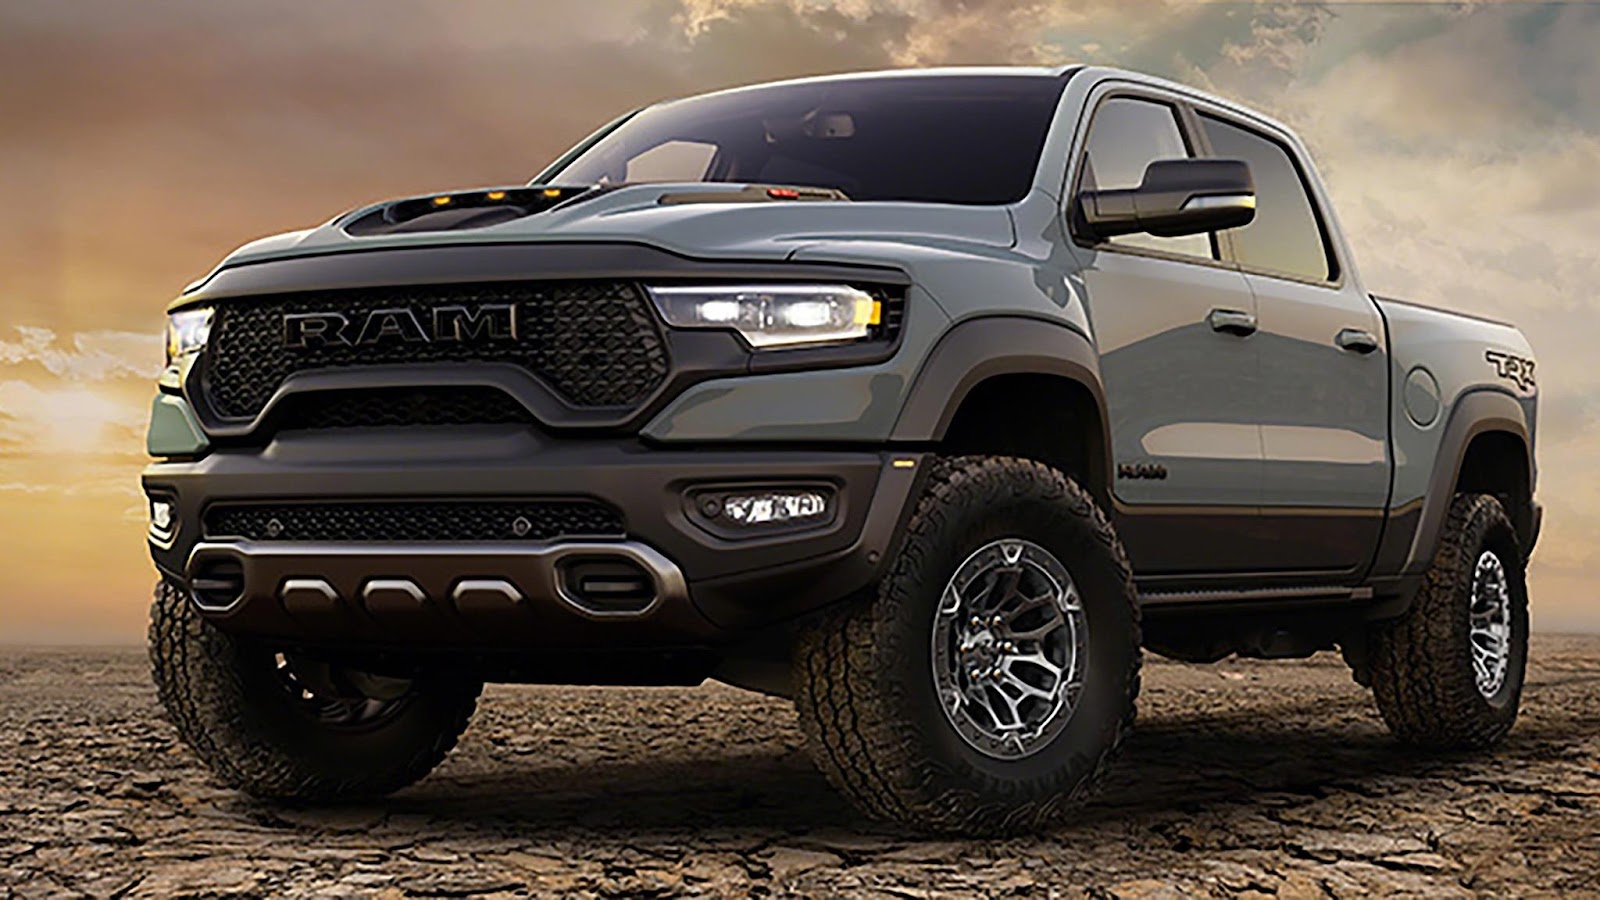 First Look: The 2021 Ram 1500 TRX Takes Aim at Ford's Raptor